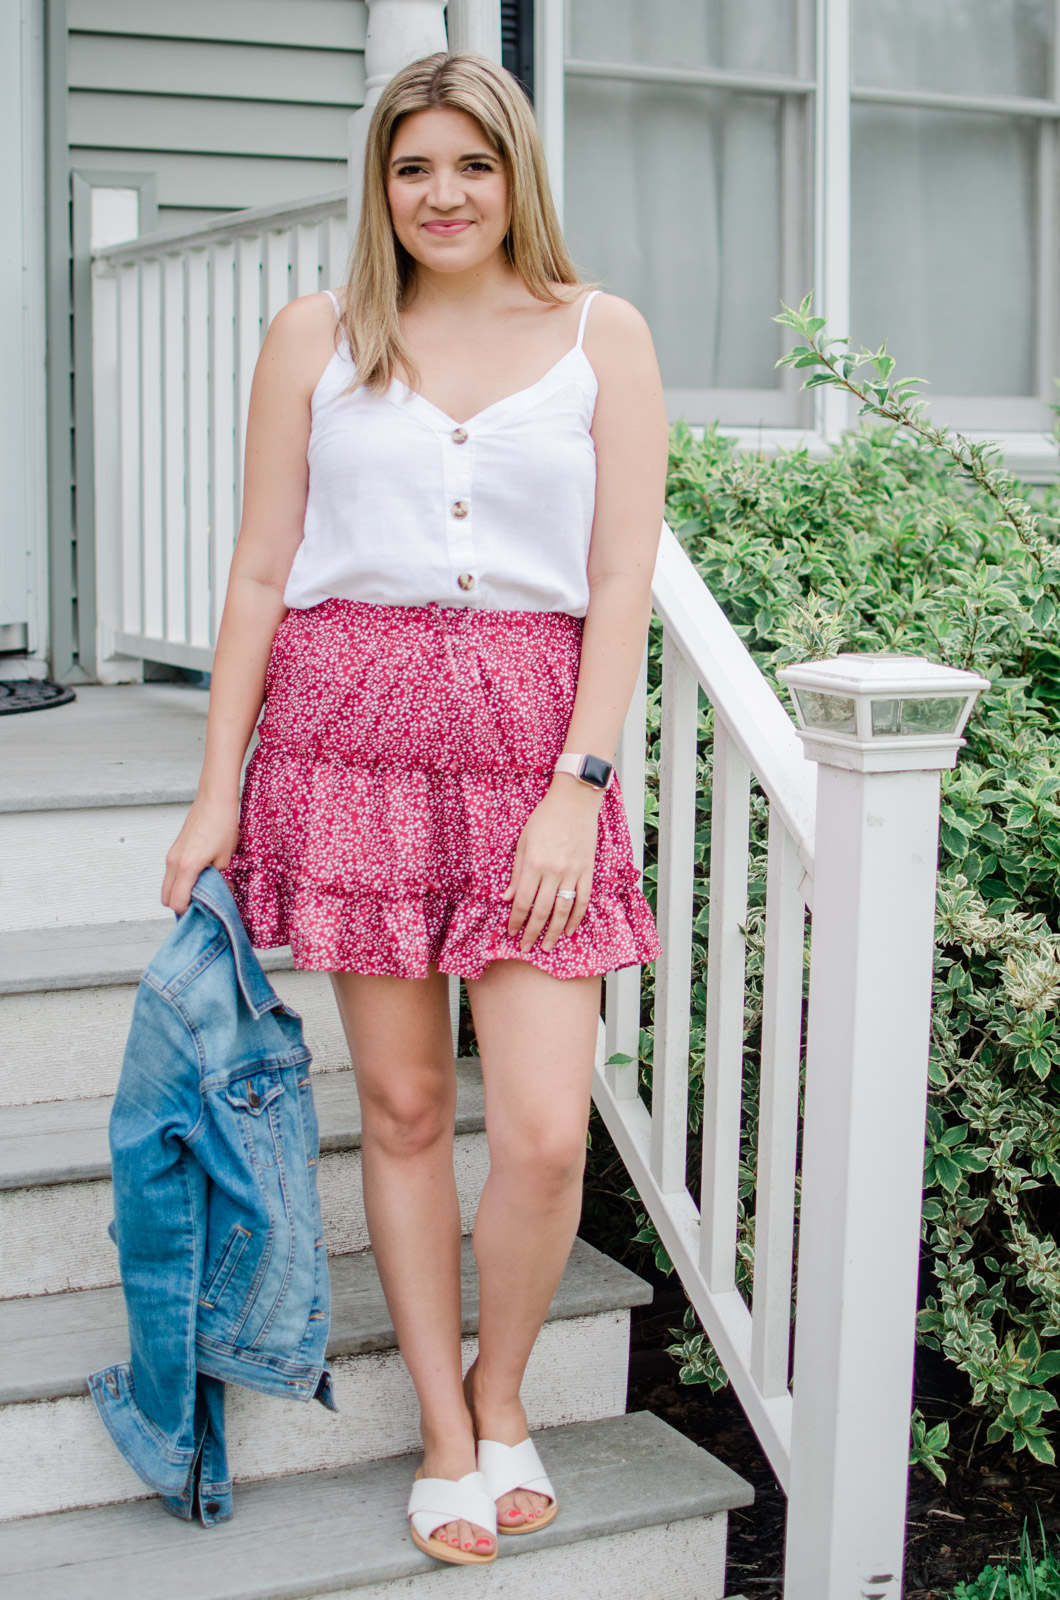 Virginia blogger, Lauren Dix, shares summer floral skirt outfits all featuring a $16 mini skirt from Amazon!